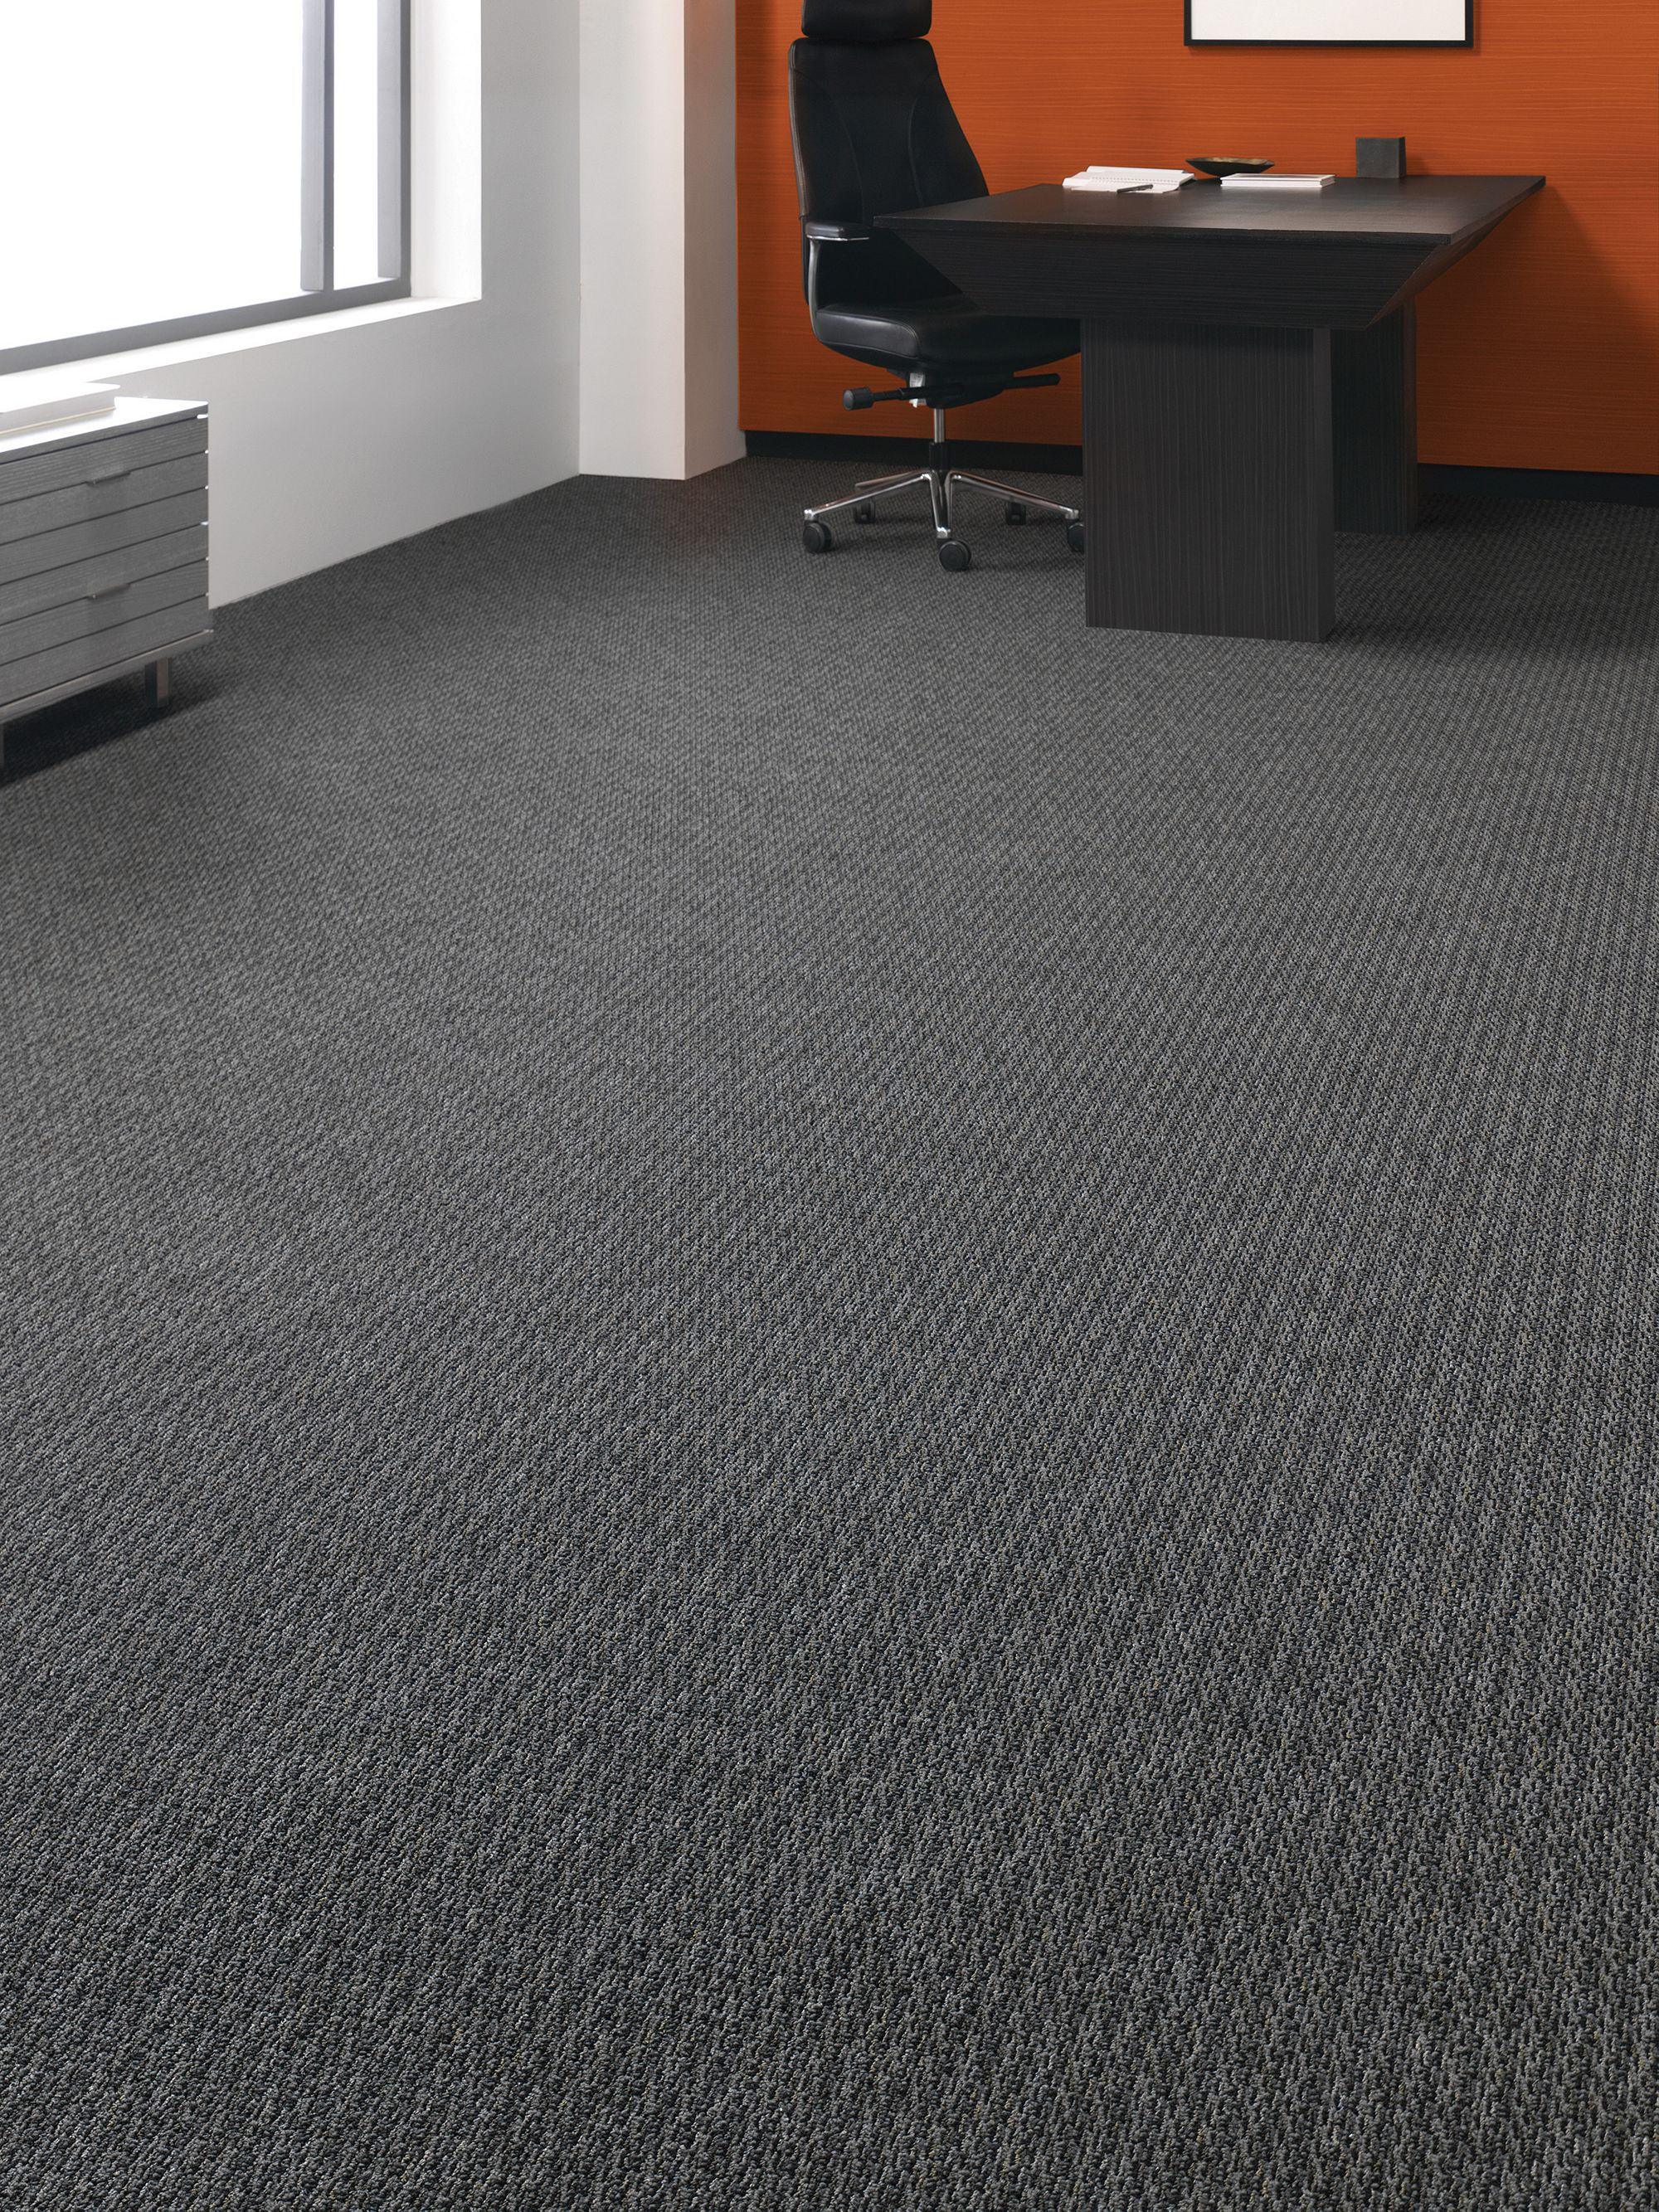 Attractive Broadloom Carpet - Artist II - Mathematician | Mohawk Group JZ12